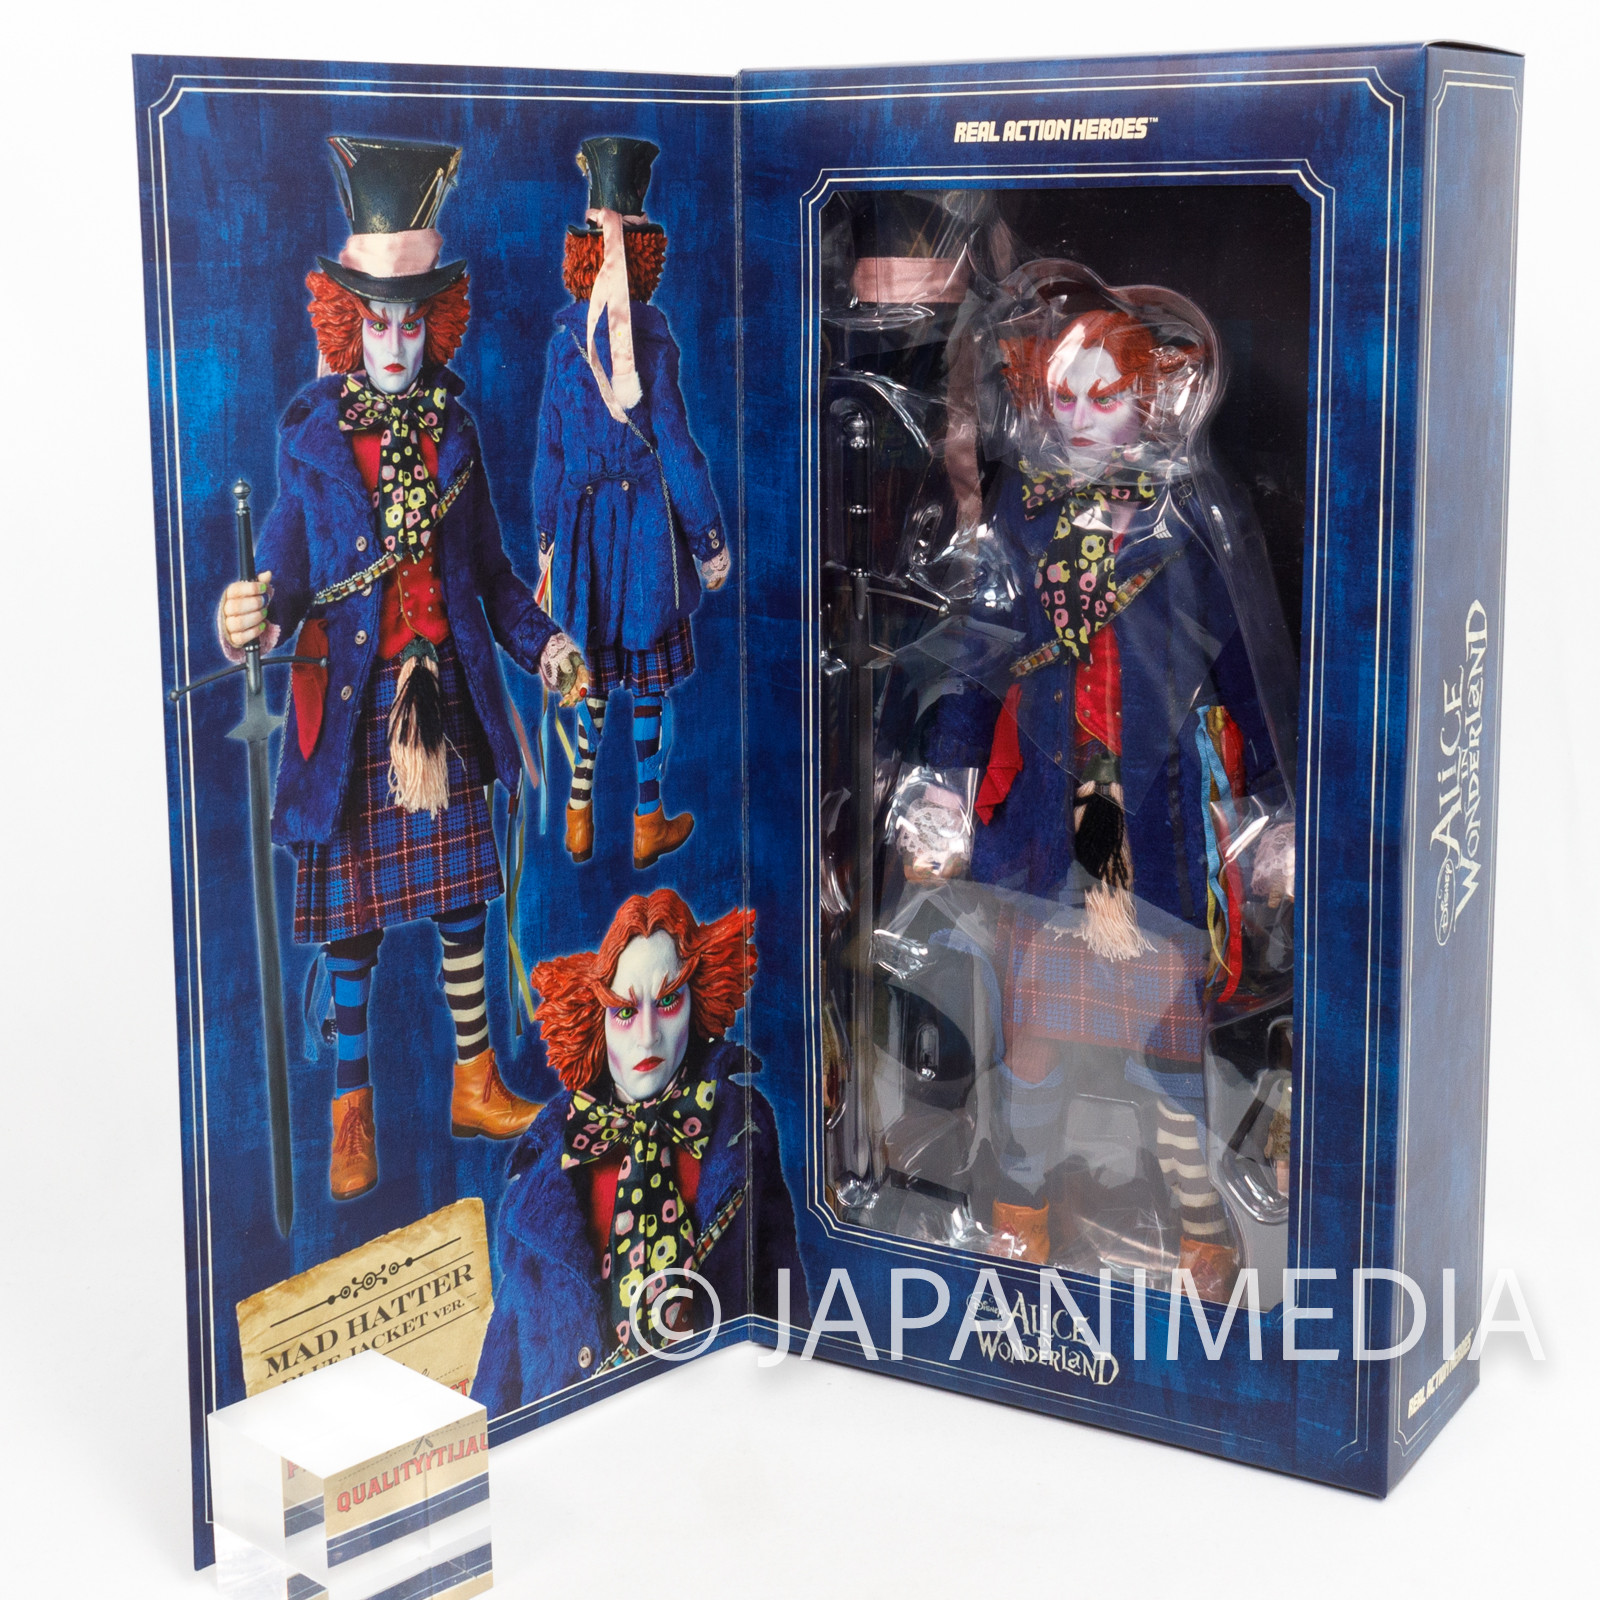 Alice in Wonderland MAD HATTER Johnny Depp Real Action Heroes Figure Medicom